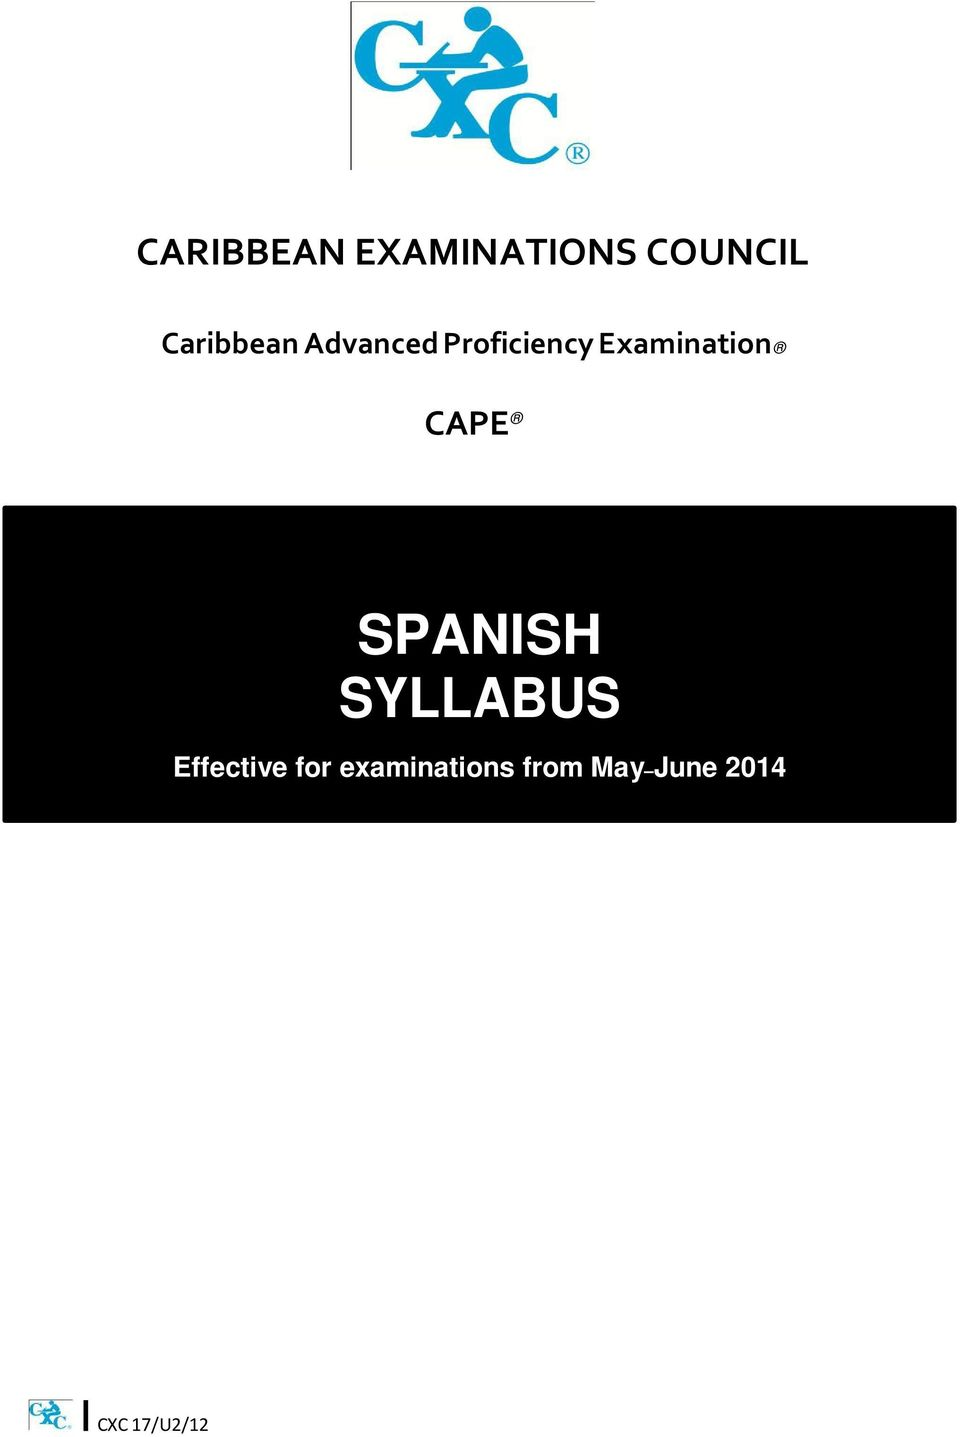 Examination CAPE SPANISH SYLLABUS